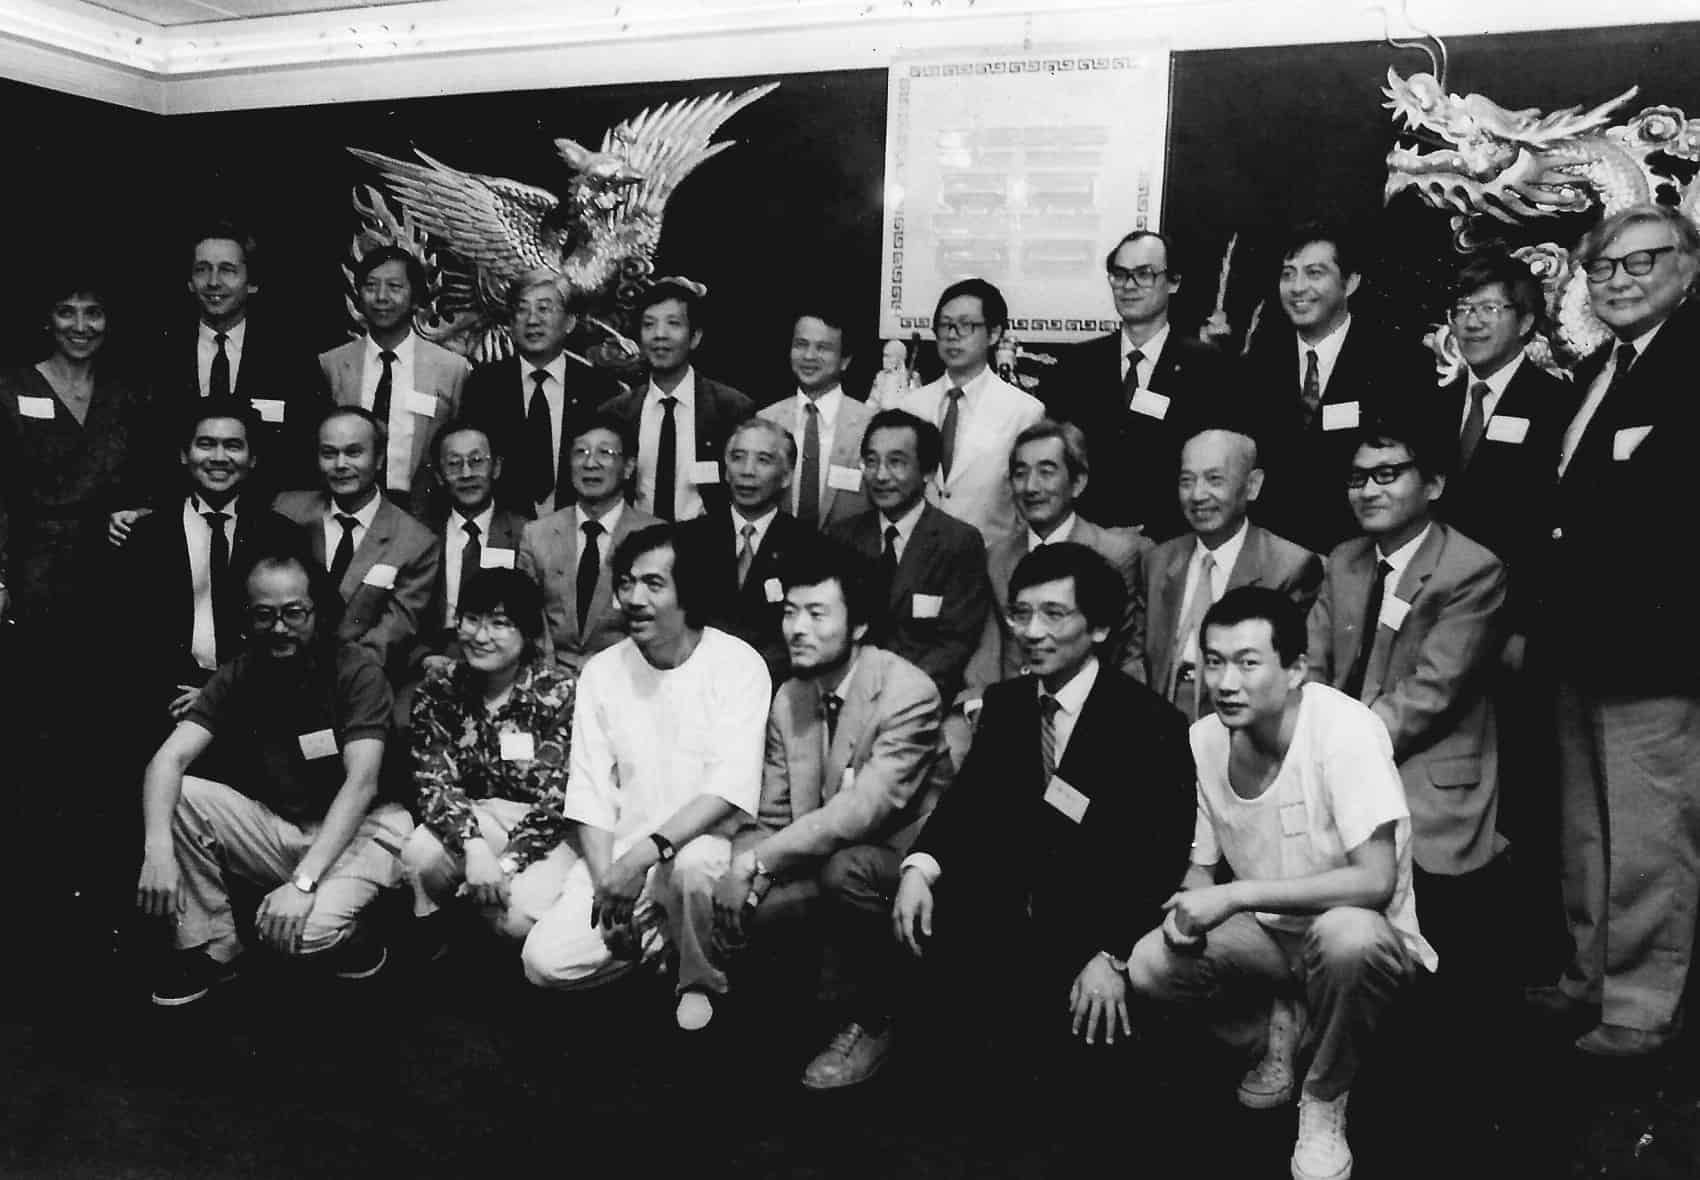 Conference participants and guests in New York City